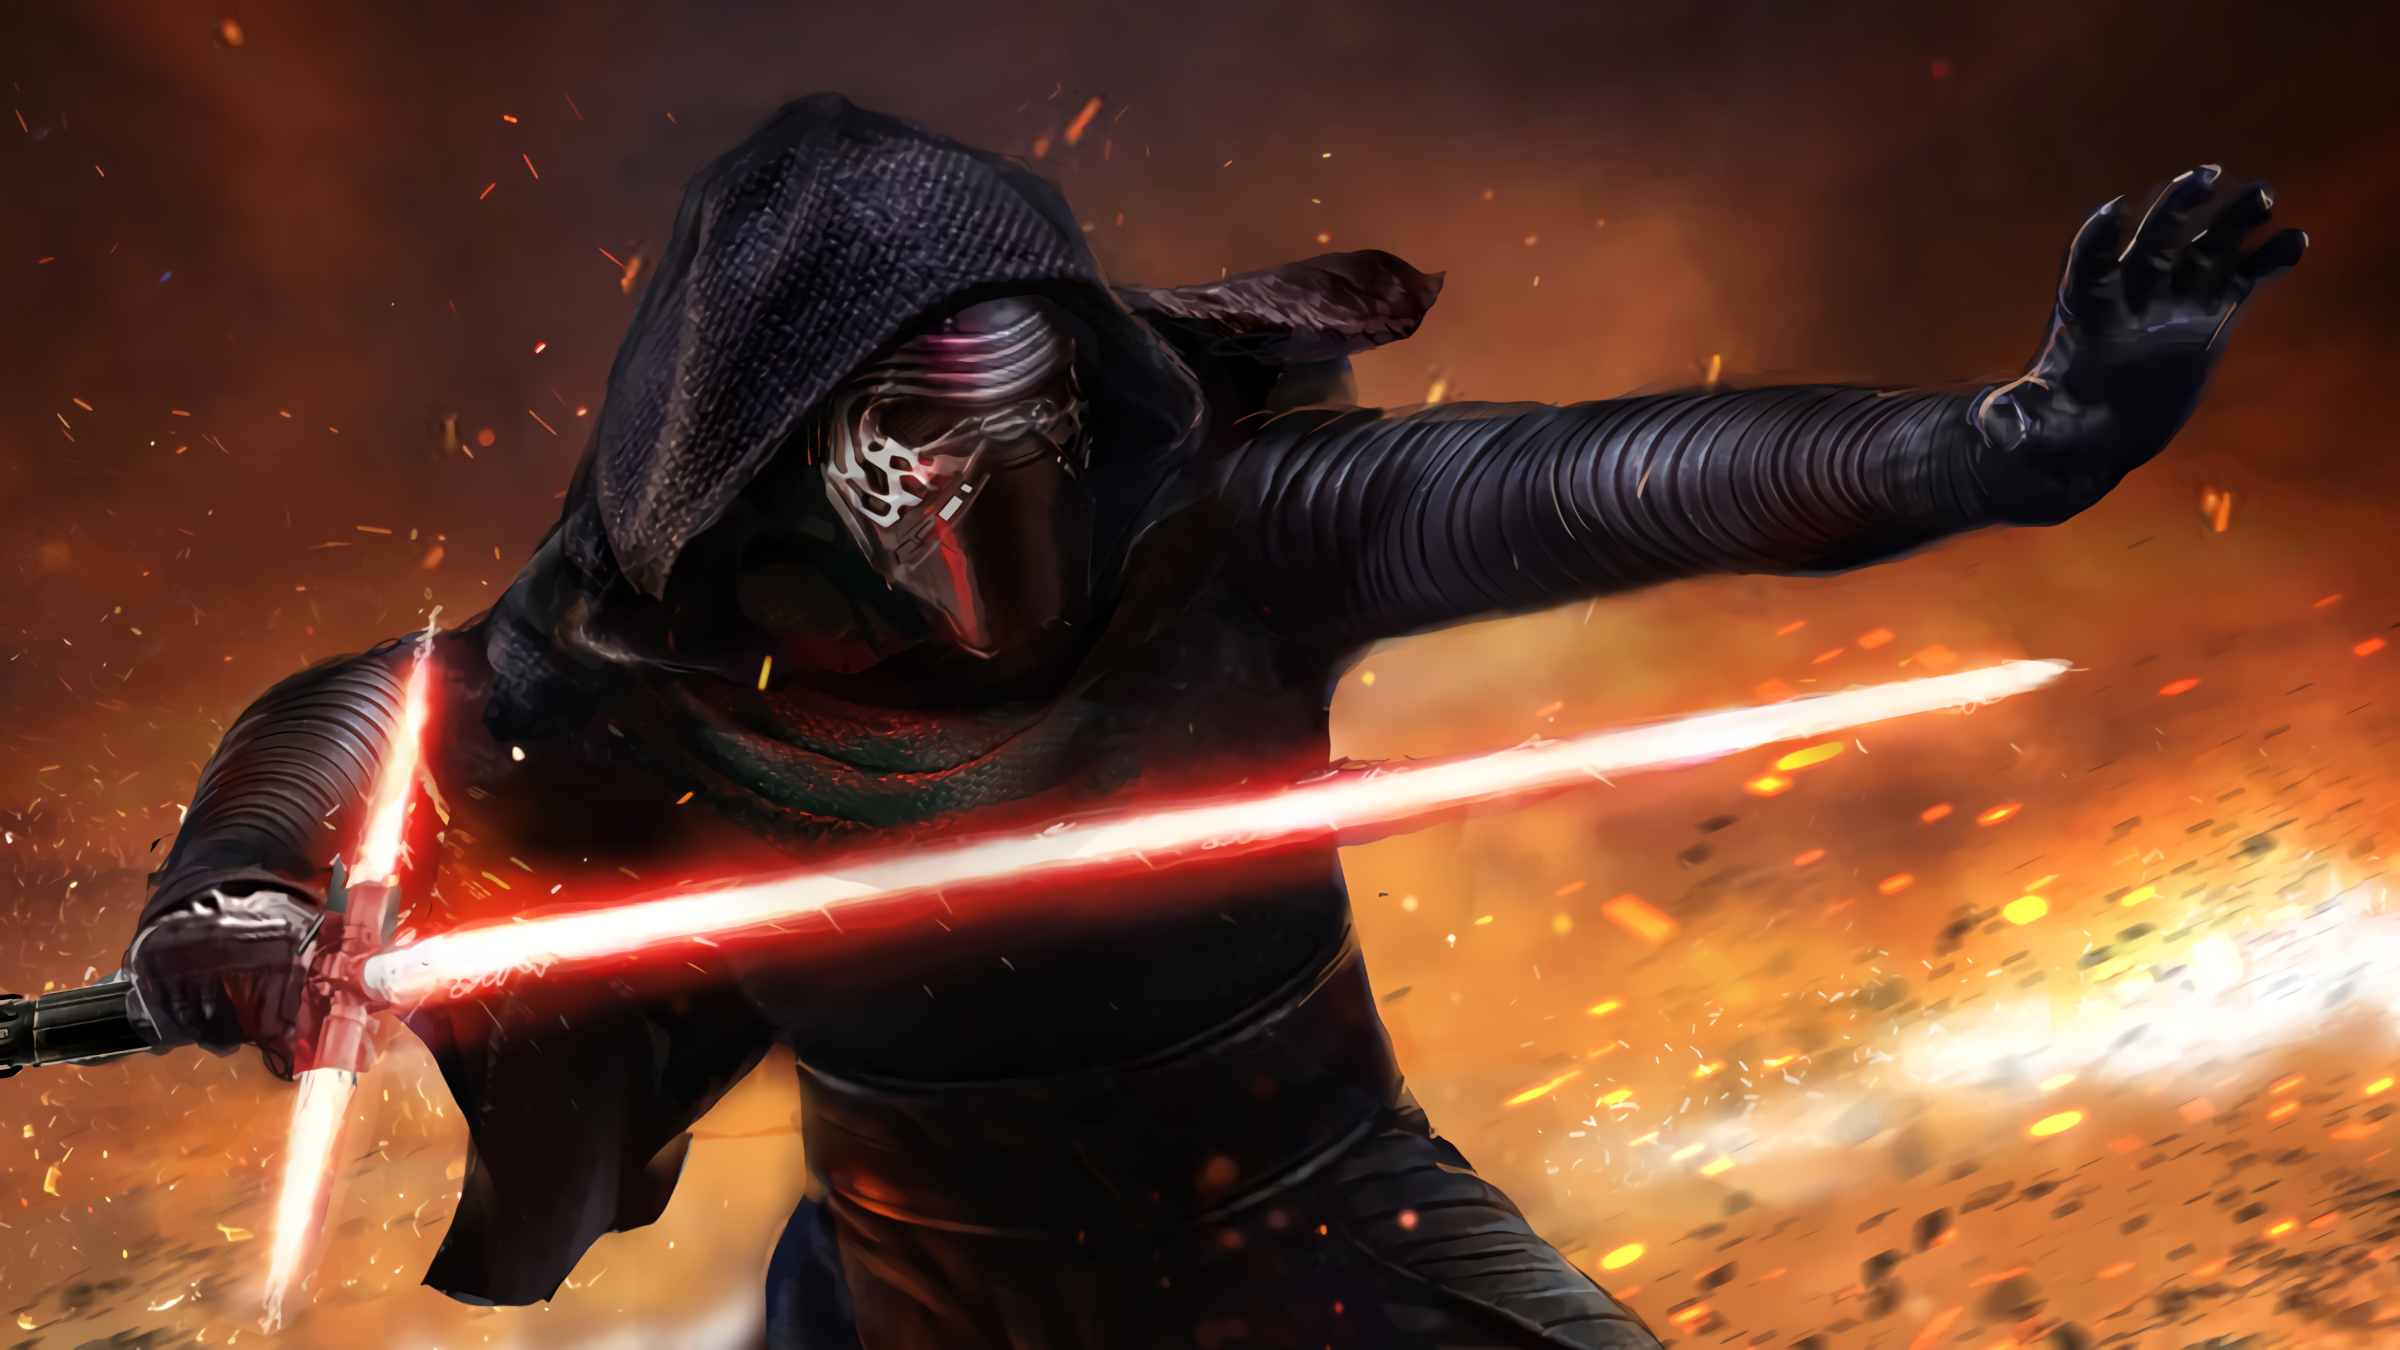 Star Wars Episode Vii The Force Awakens Hd Wallpaper Background Image 2400x1350 Id 742530 Wallpaper Abyss